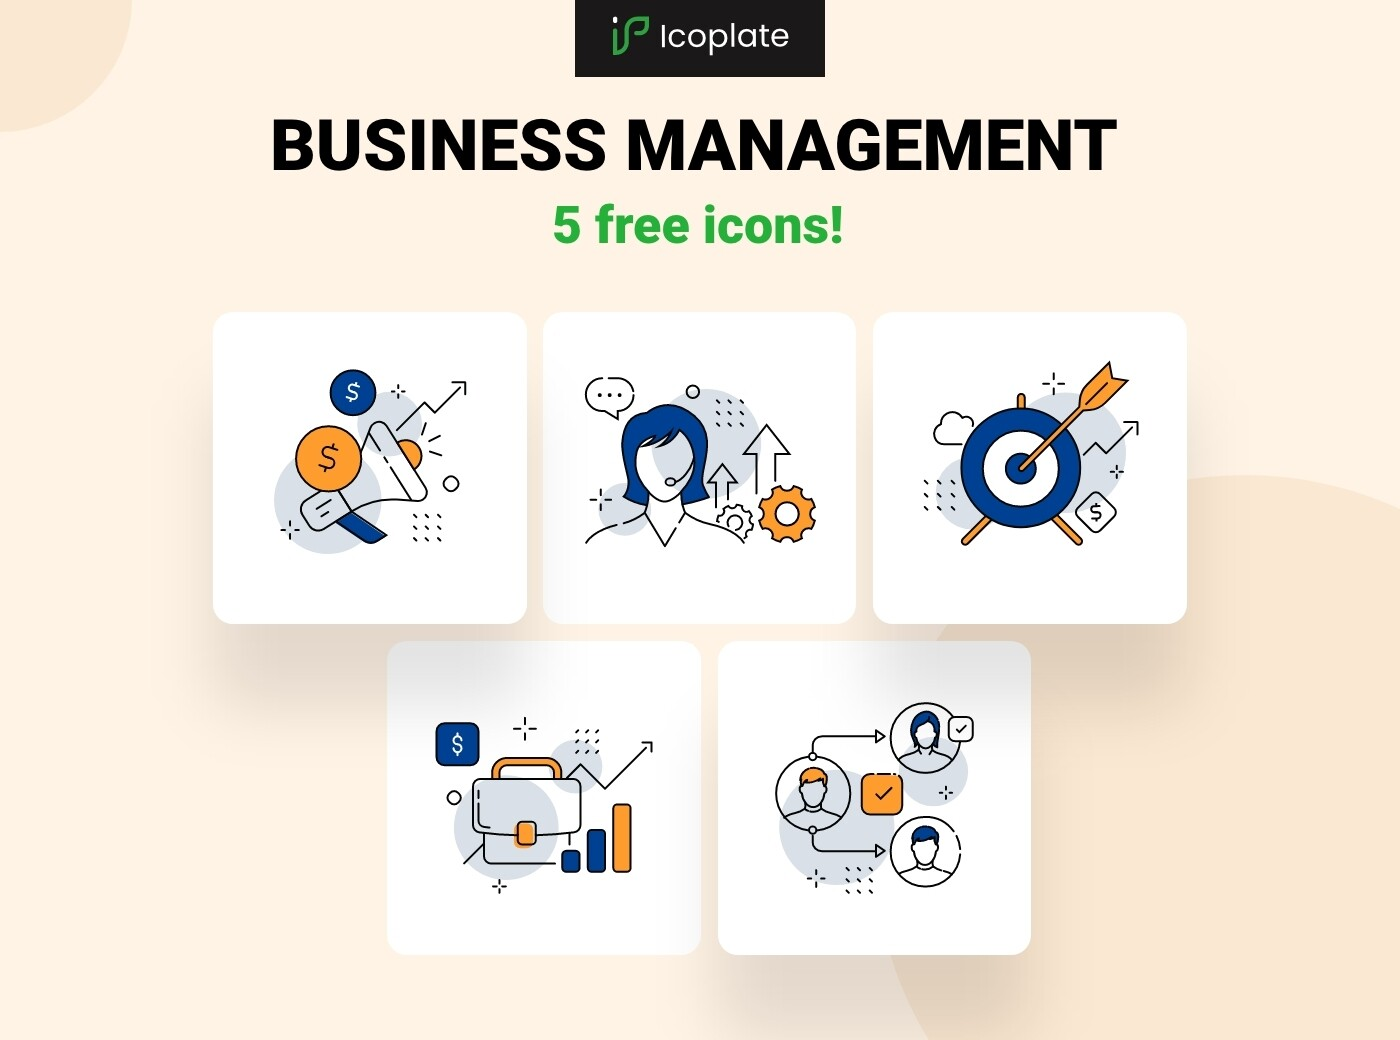 5 Free business icons